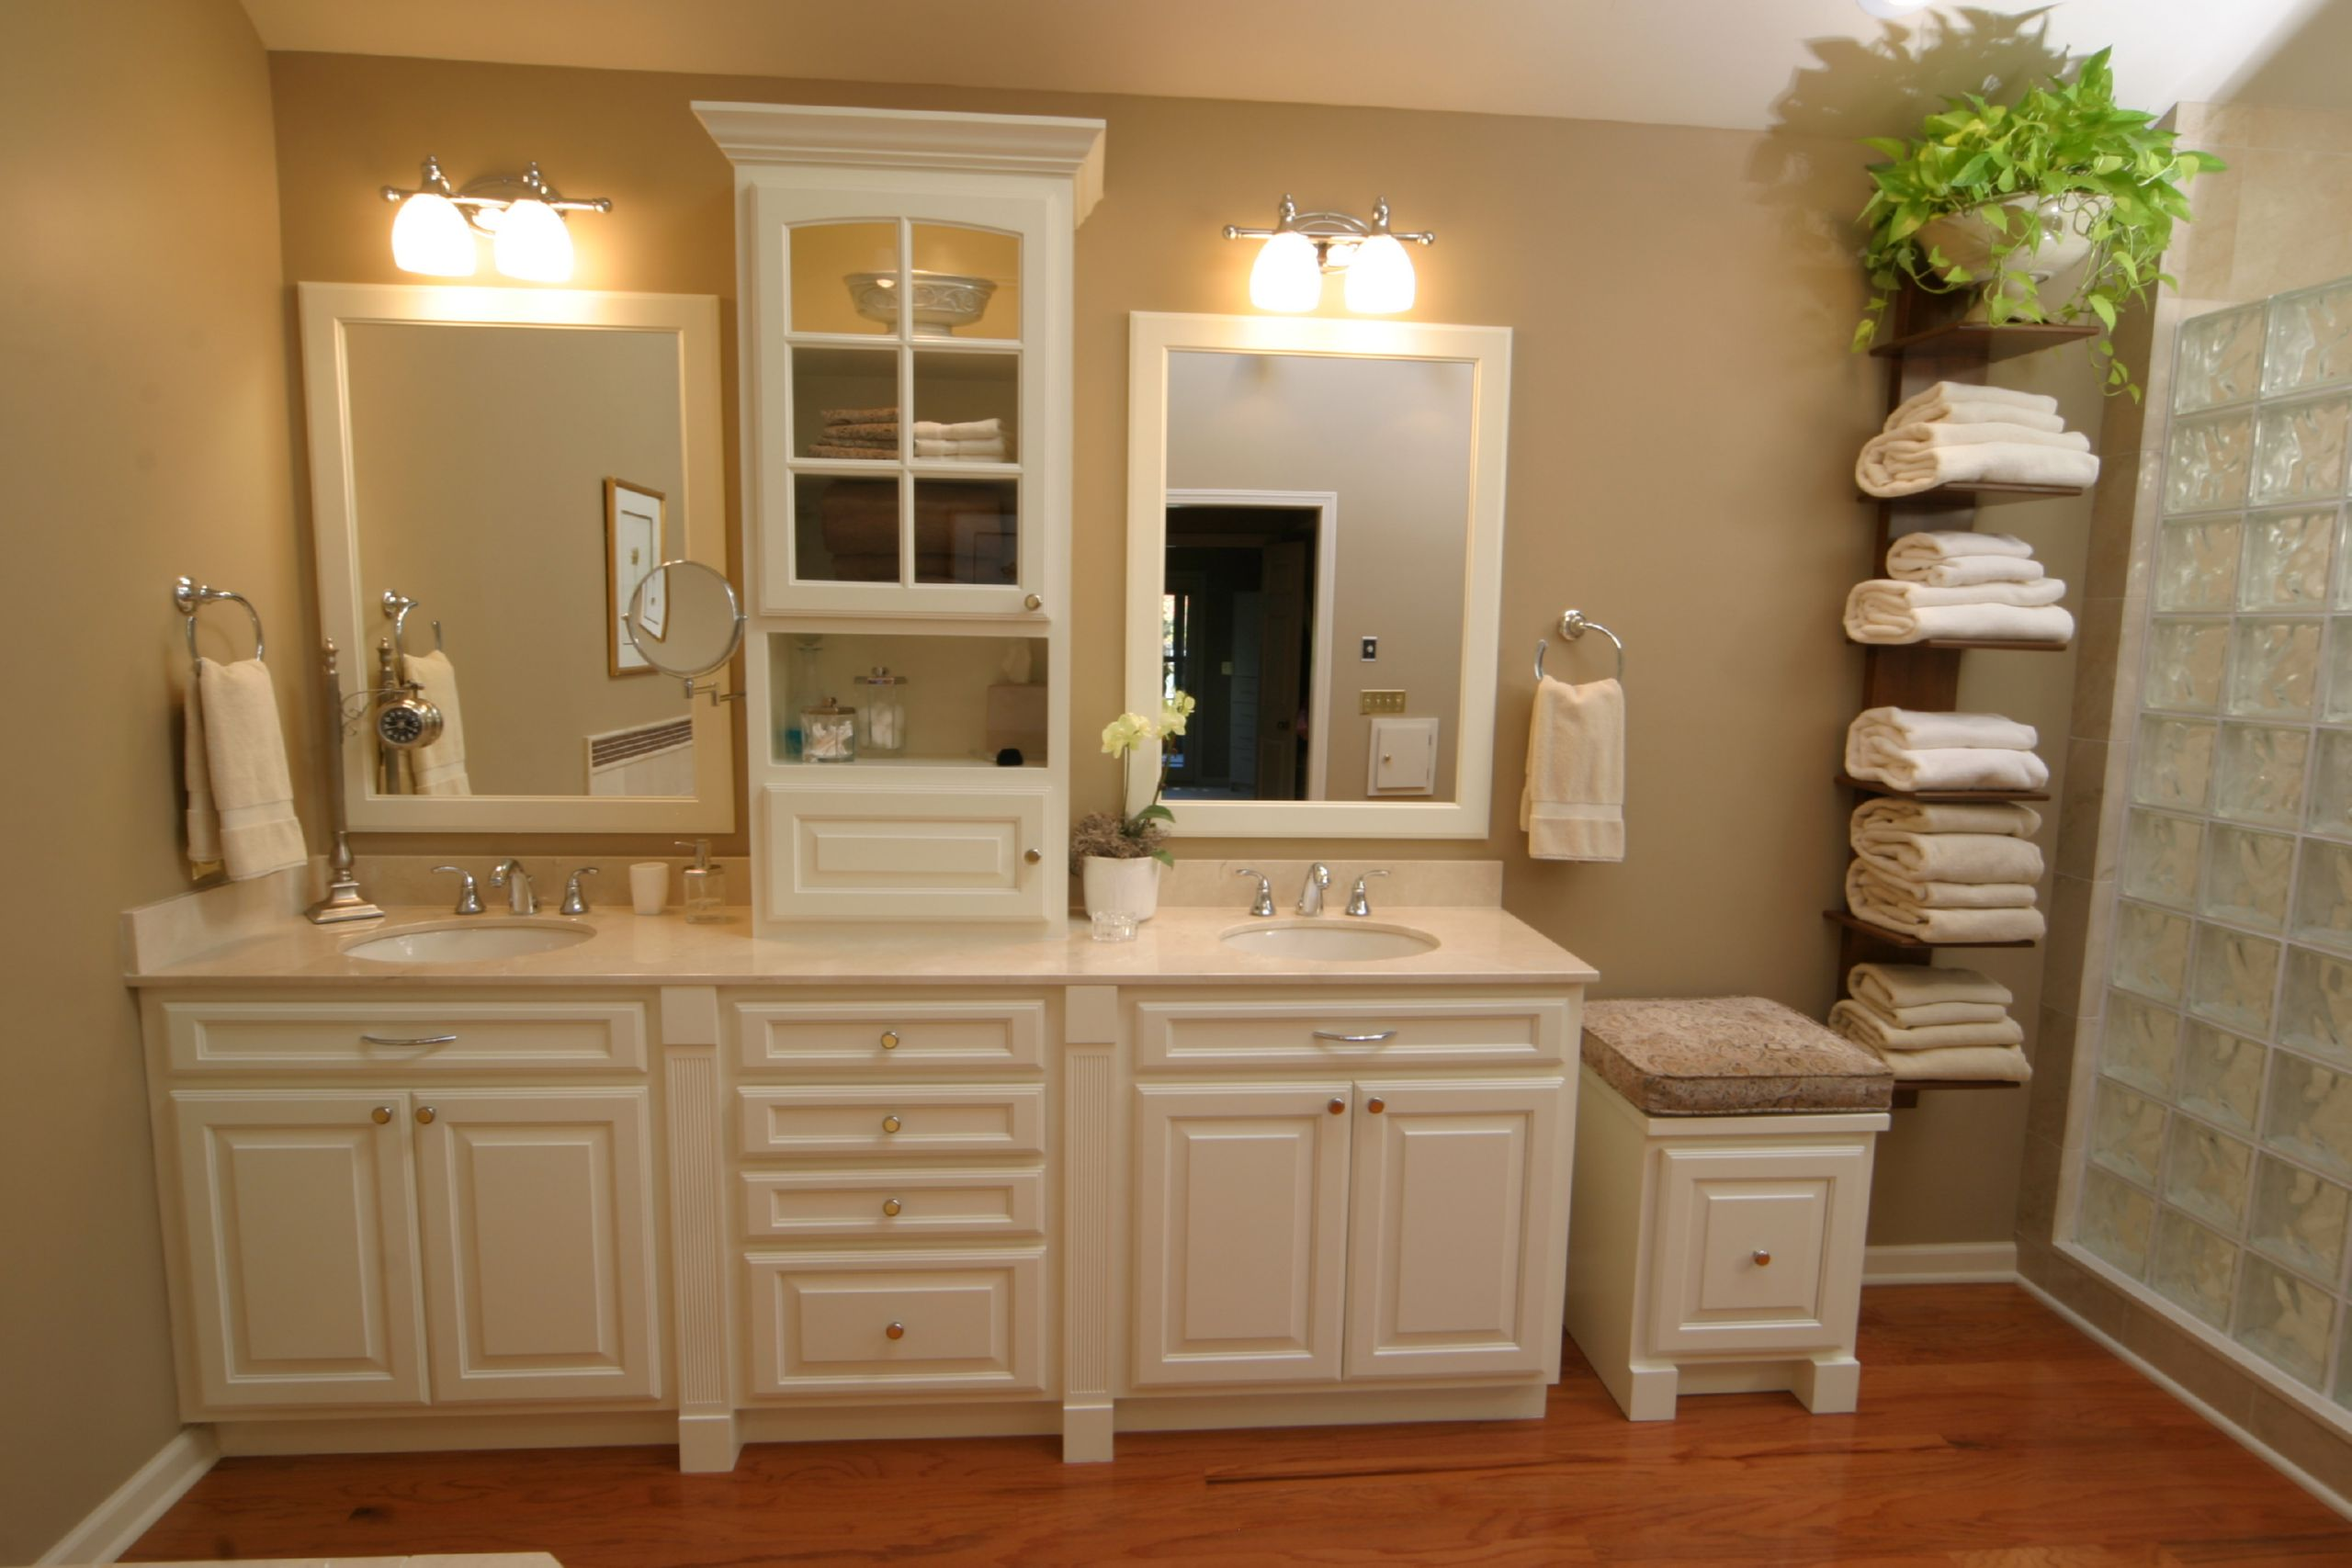 Bathroom remodeling bath remodel contractor for Bathroom design and remodel